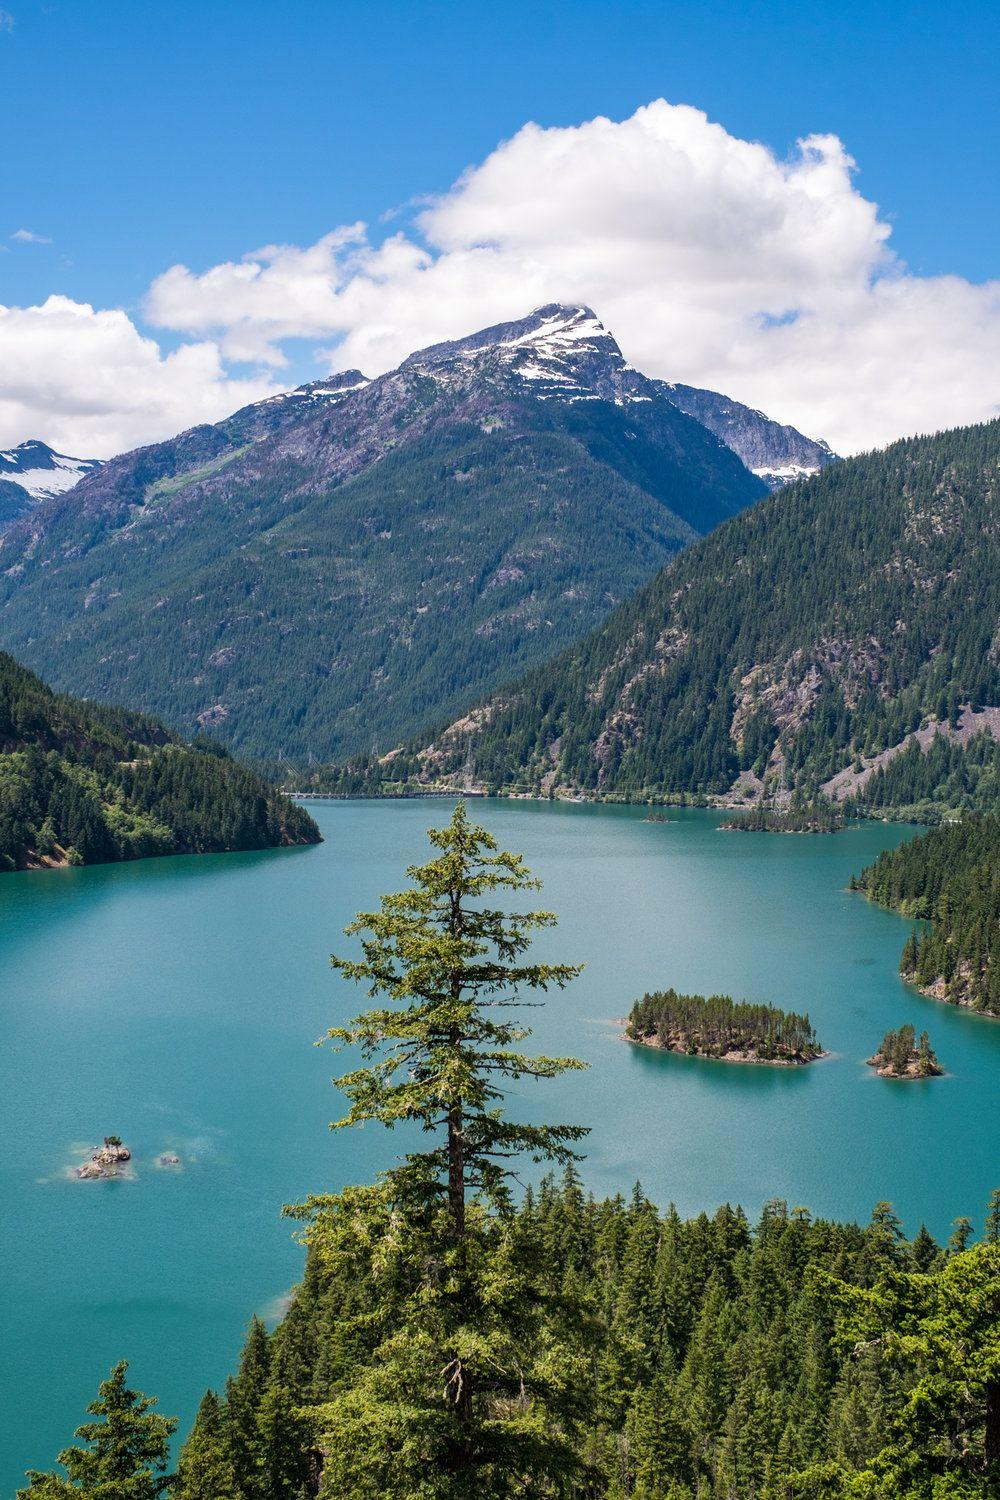 North Cascades National Park Wallpapers - Wallpaper Cave